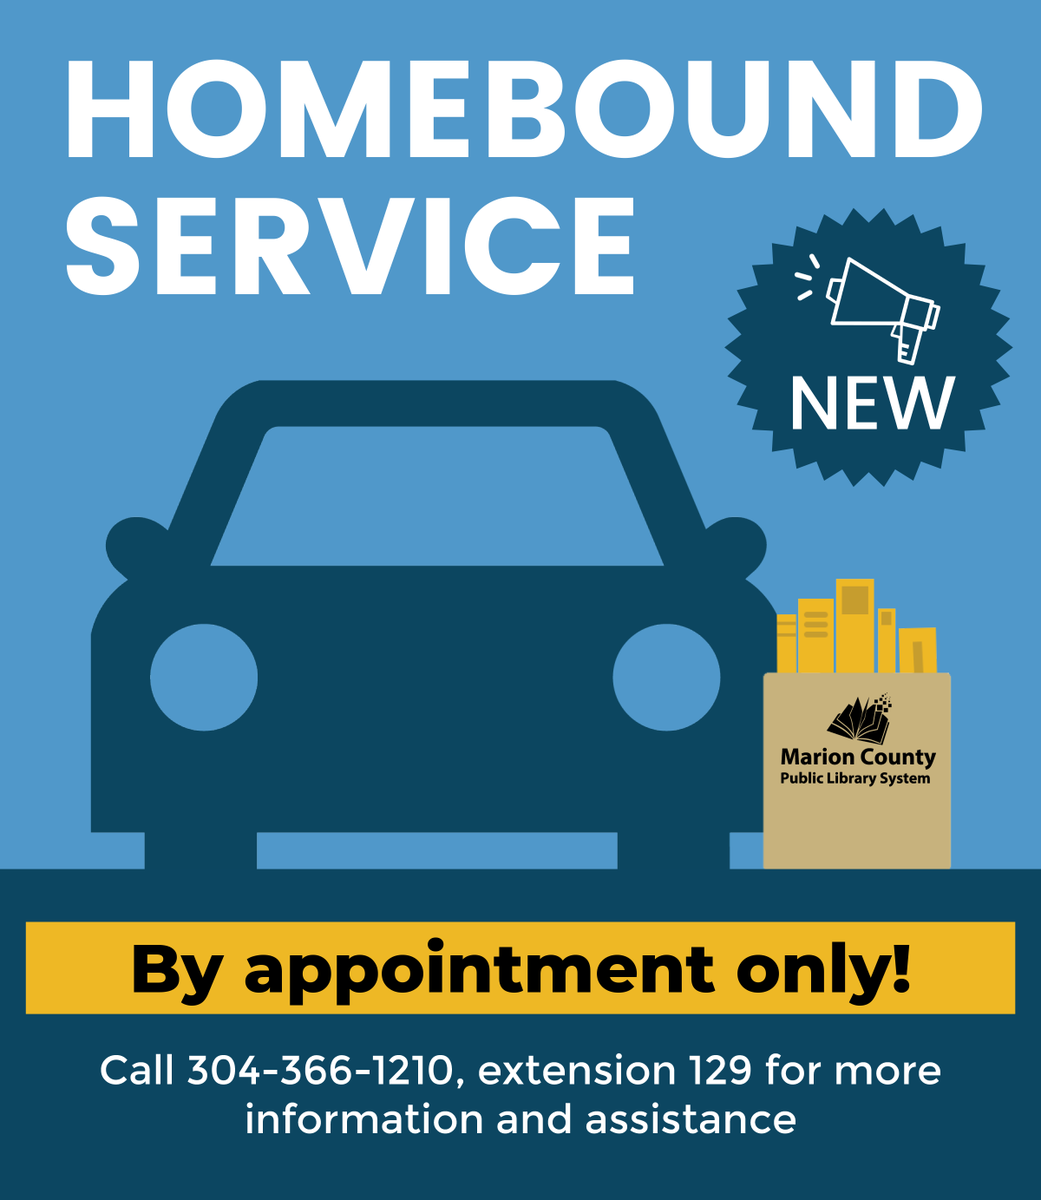 We are now offering homebound services! Please call 304-366-1210, extension 129 for more information or to sign up, or visit  for details.